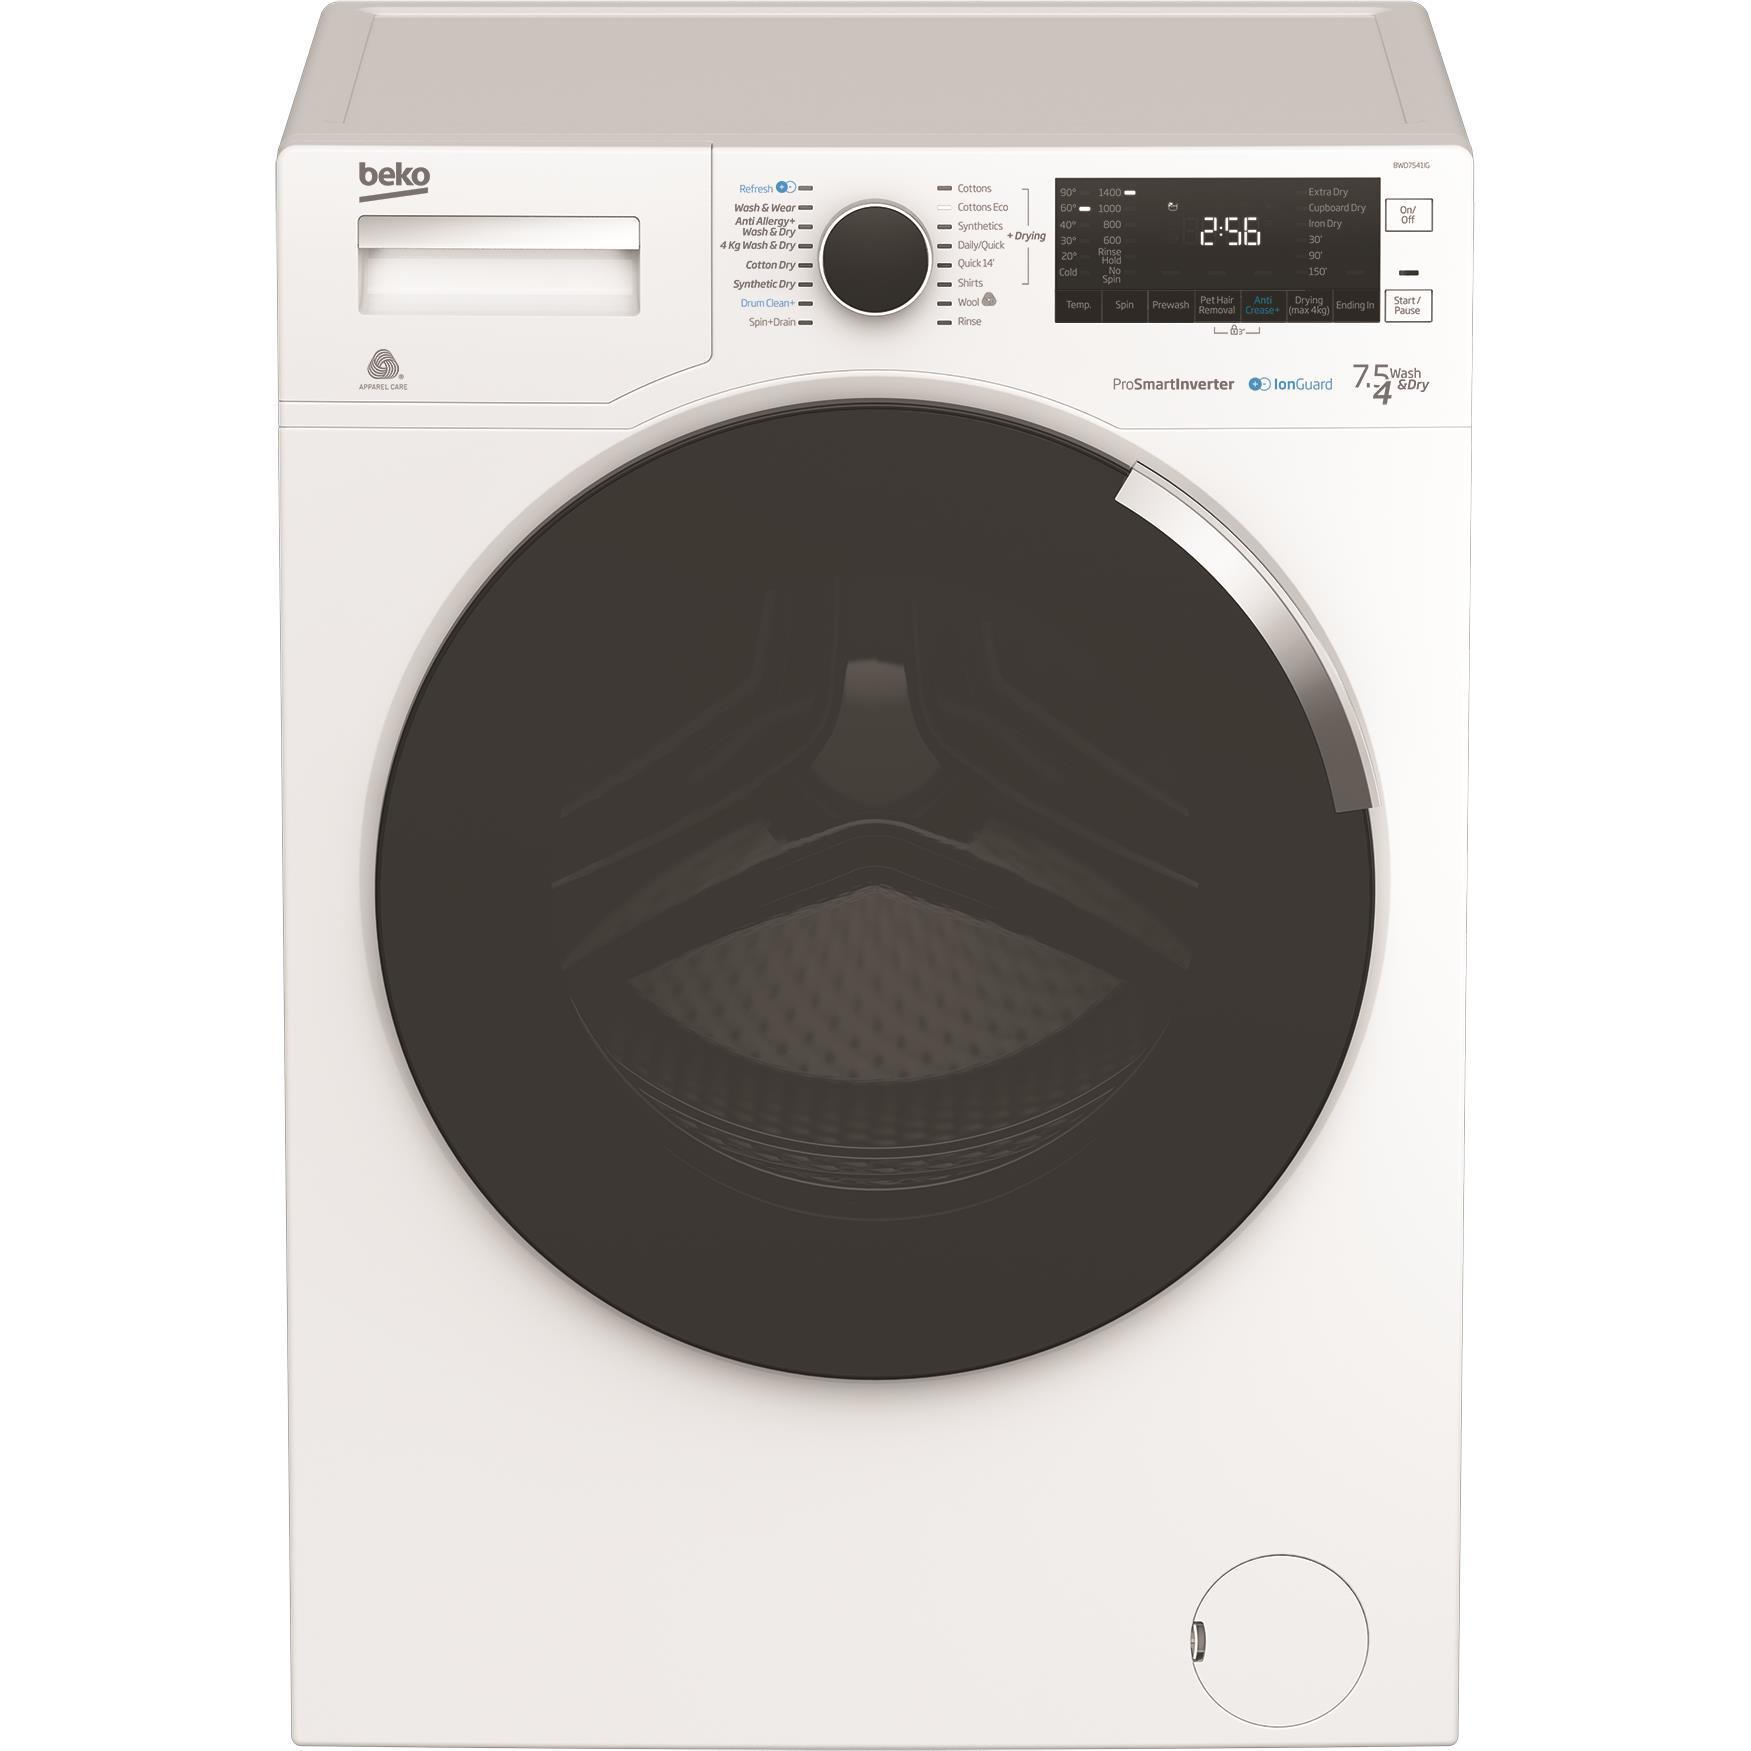 Beko BWD7541IG 7.5kg/4kg Washer Dryer Combo with IonGuard